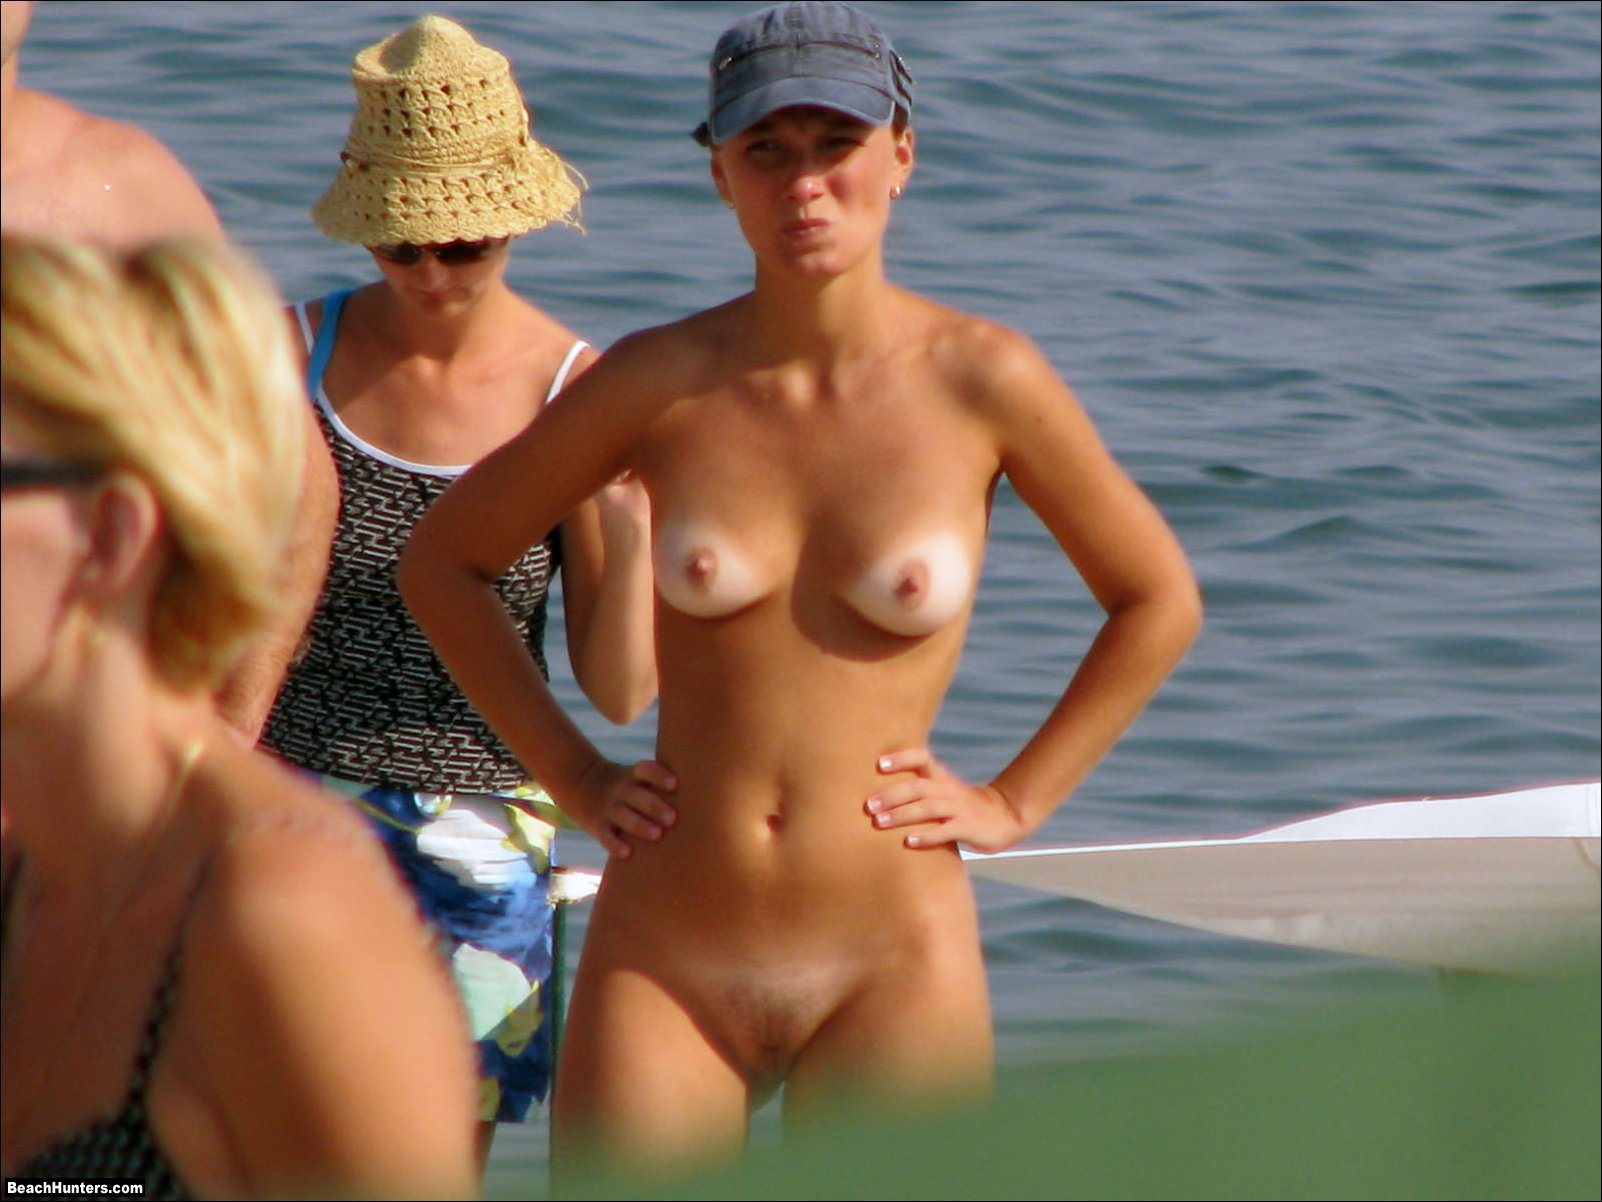 Free nude beach volleyball women sex movies agree, this